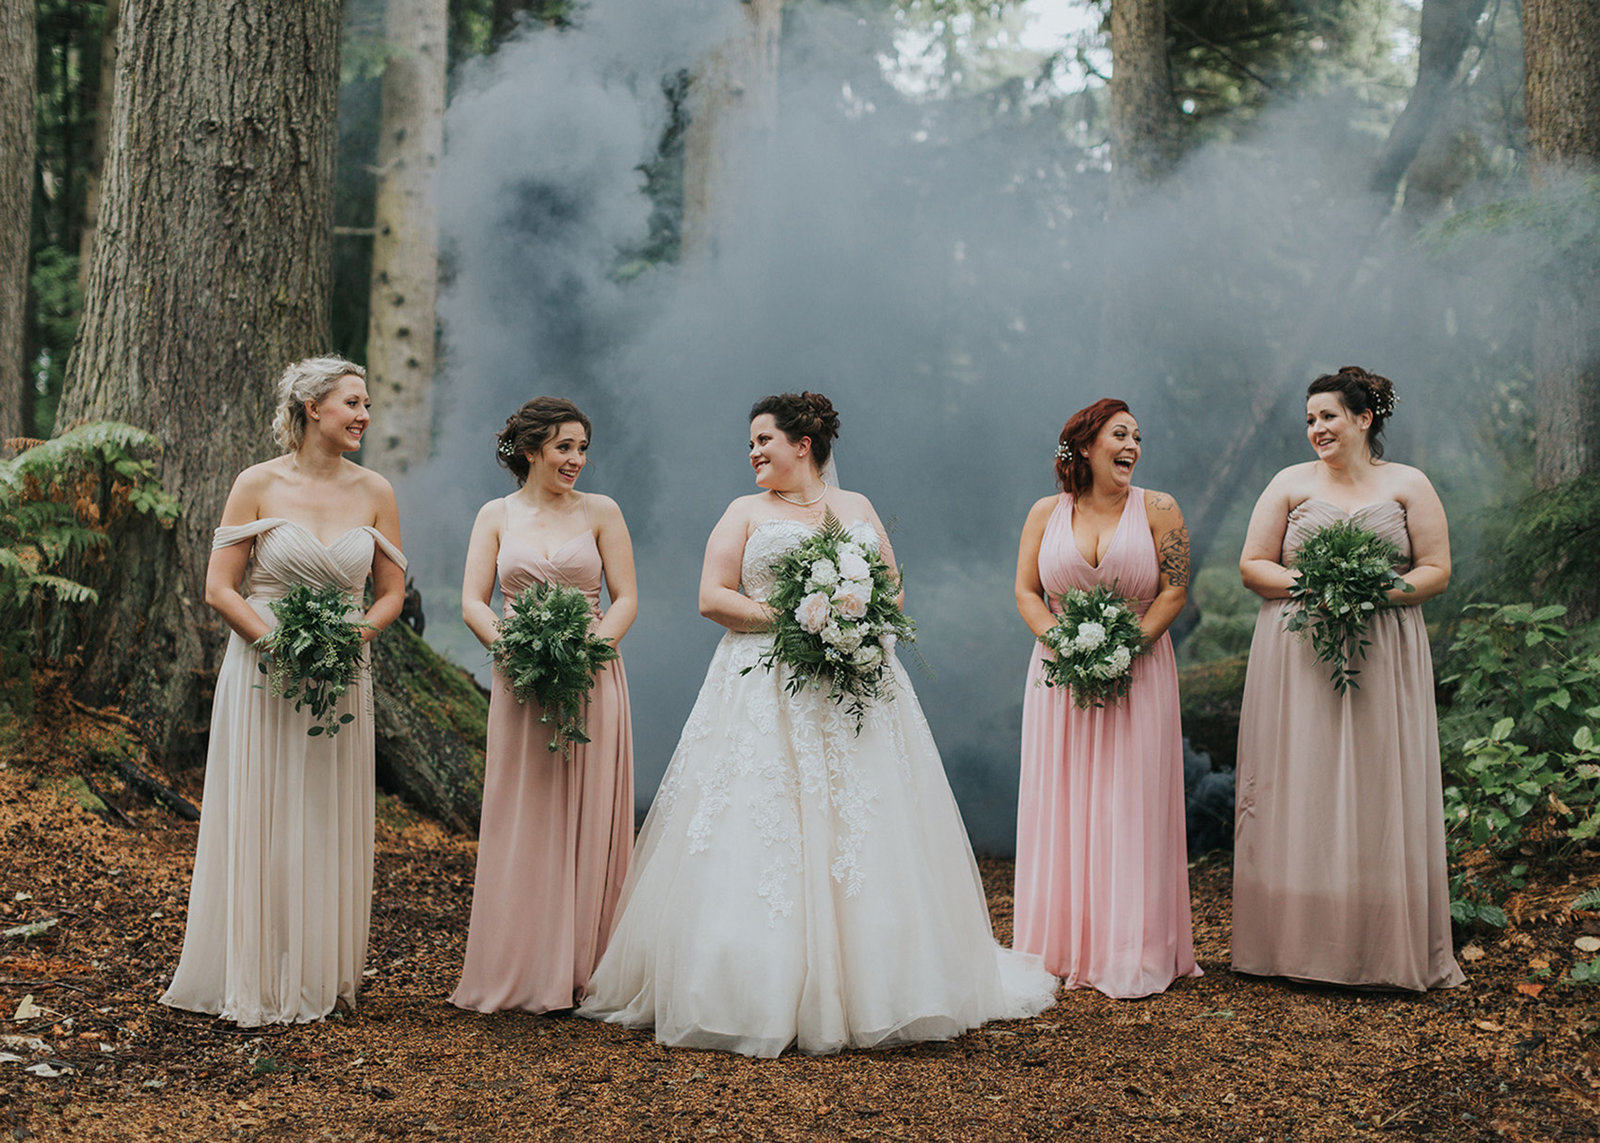 Bride and her bridesmaids sharing a laugh in the forest